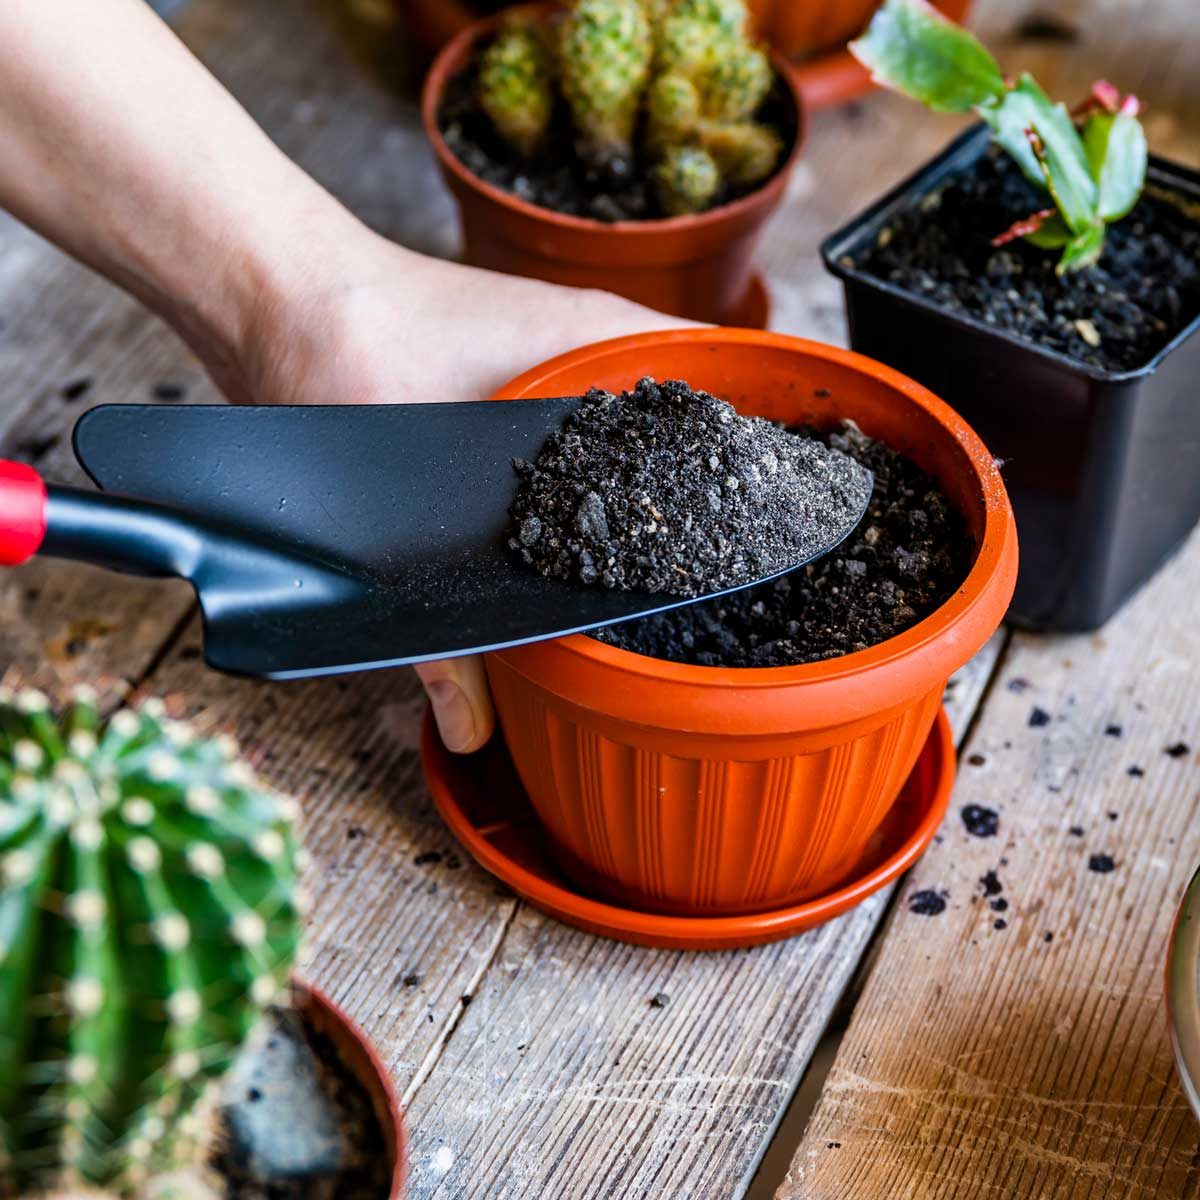 Putting potting soil into containers